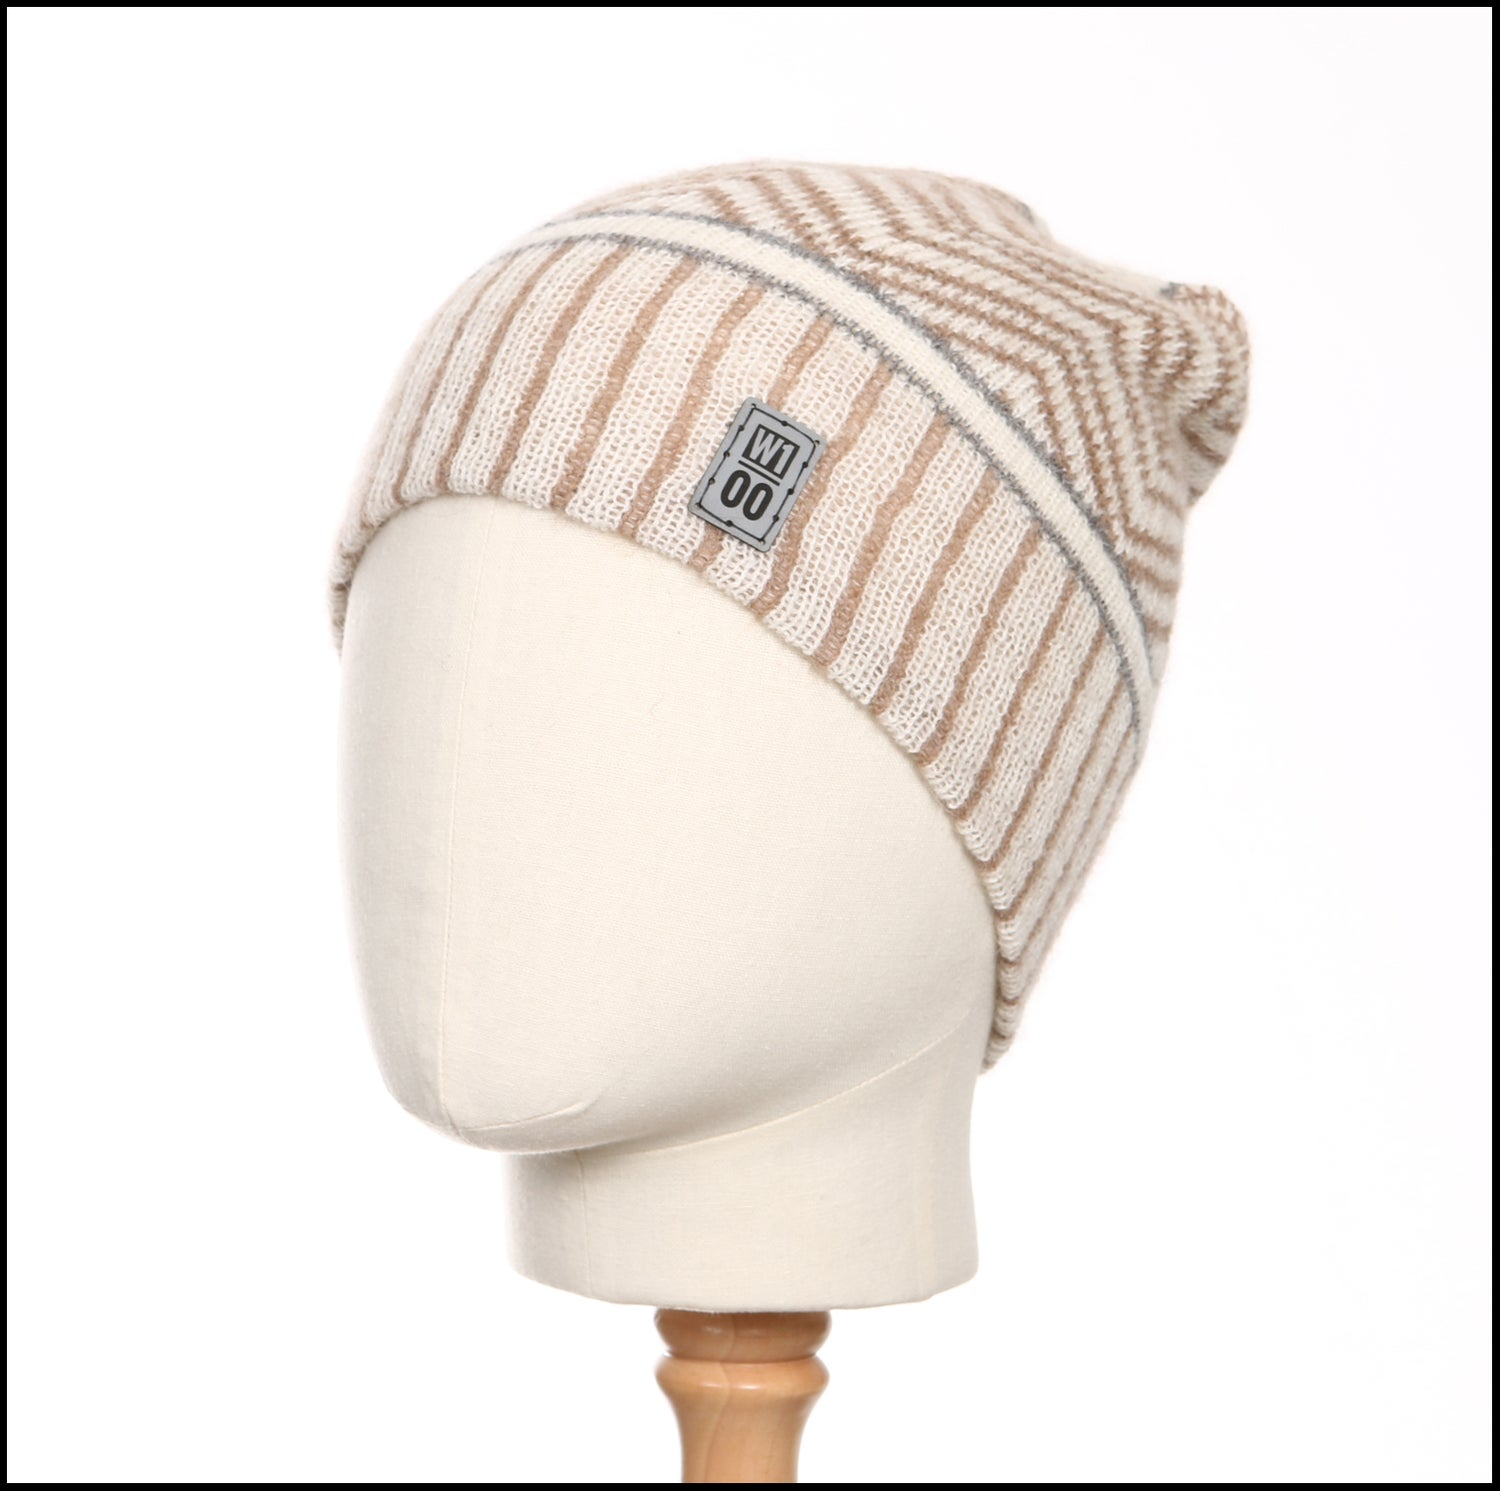 Image of Echoing Peaks and Stripes Toque (white, fawn, grey alpaca) - 100 Mile Wardrobe Series